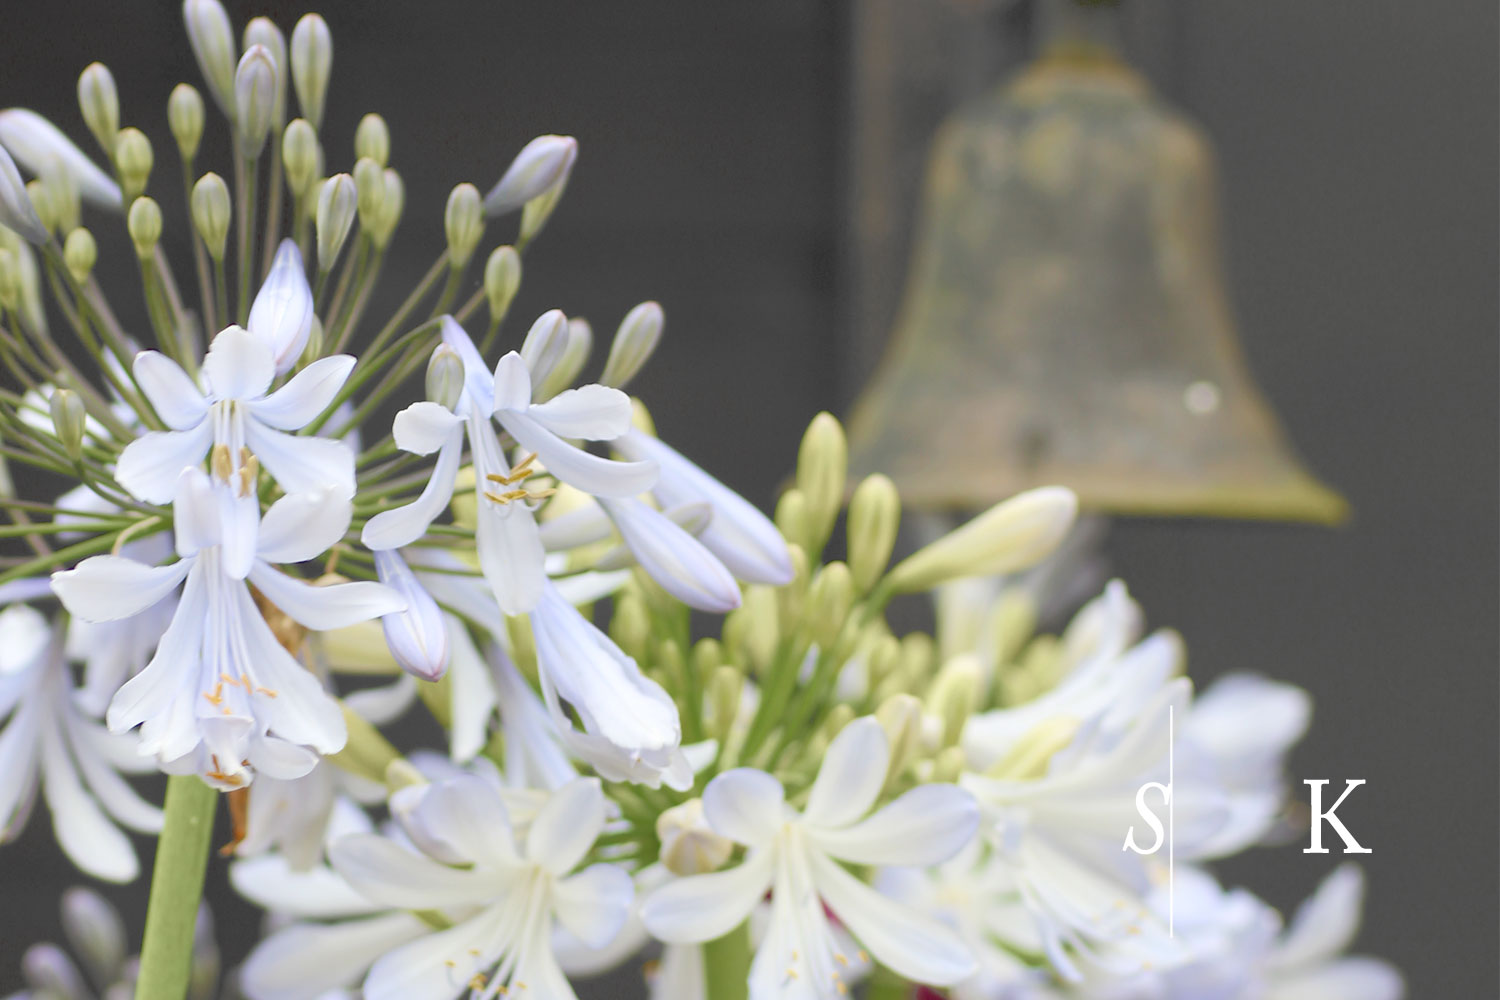 Cornwall Agapanthus for sale